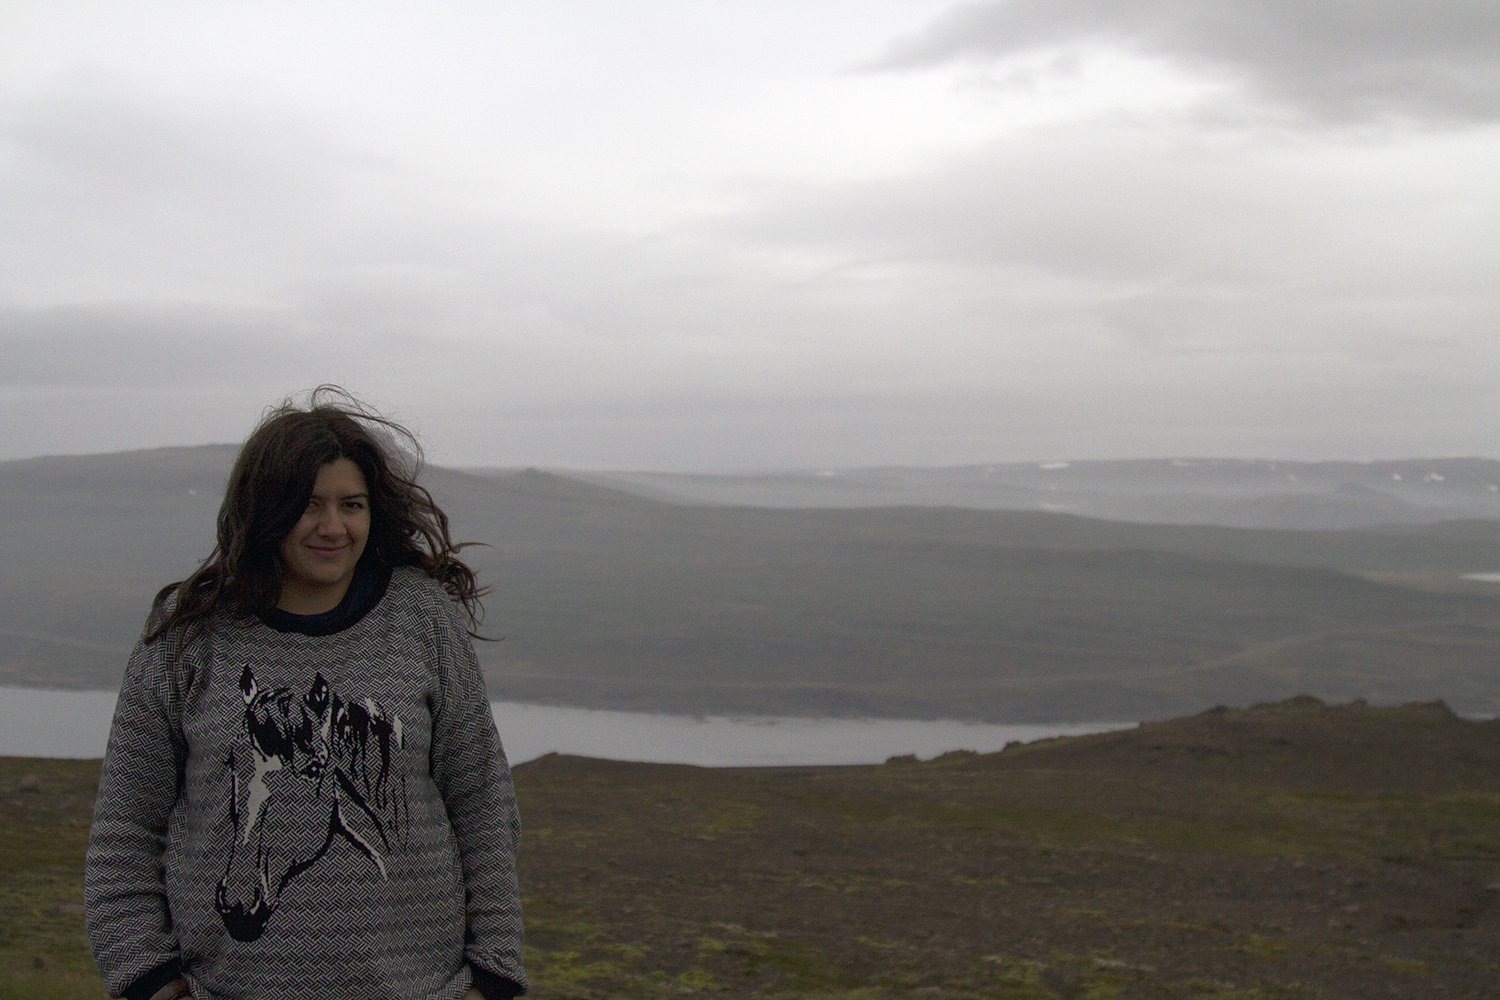 If you want see this country as it was intended - raw, remote and untouched, then you have to get thyself to the Icelandic Westfjords.